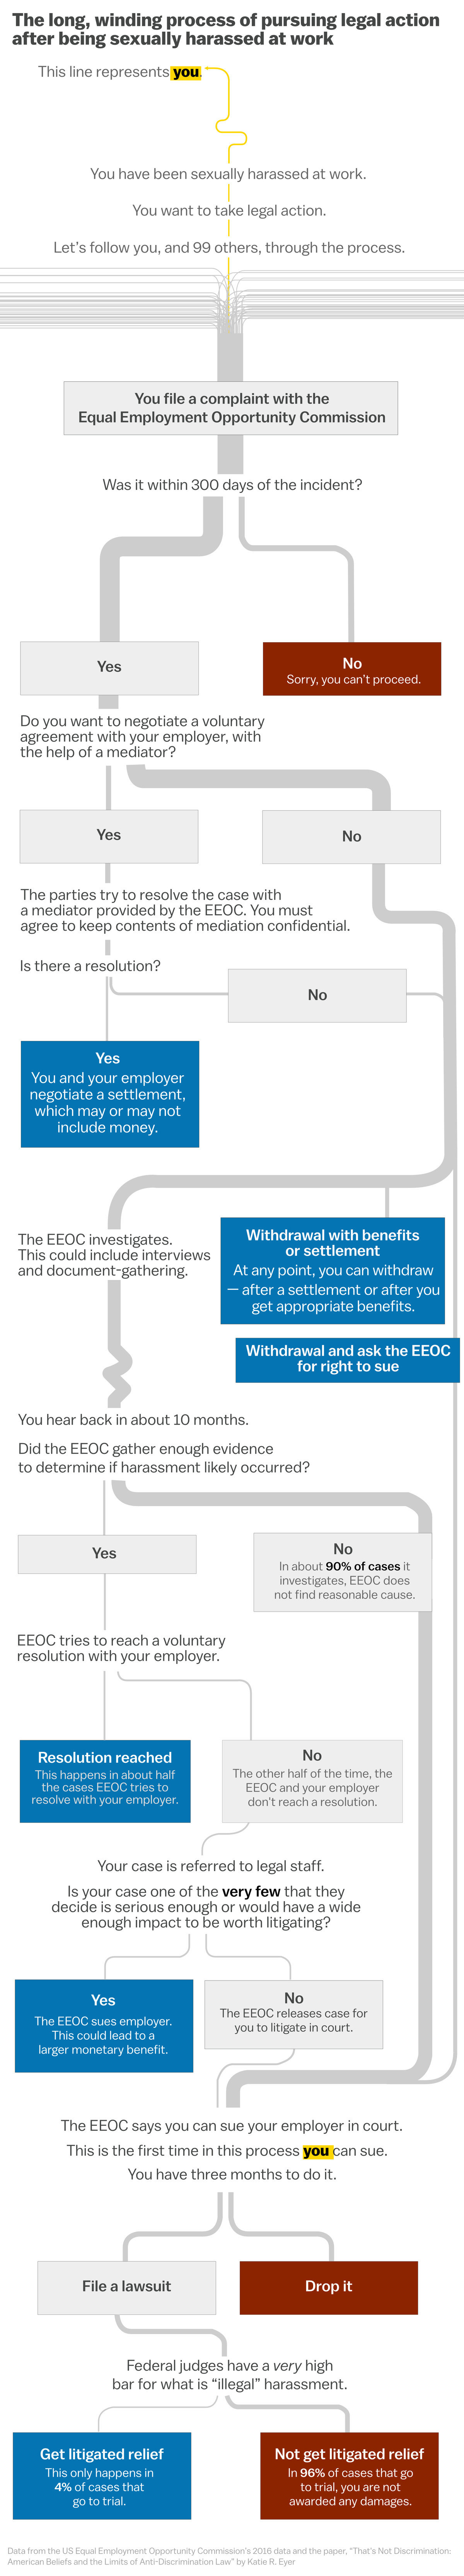 Walk through this flowchart to see how tangled the process is, and how  difficult it can be to get justice through the current system: